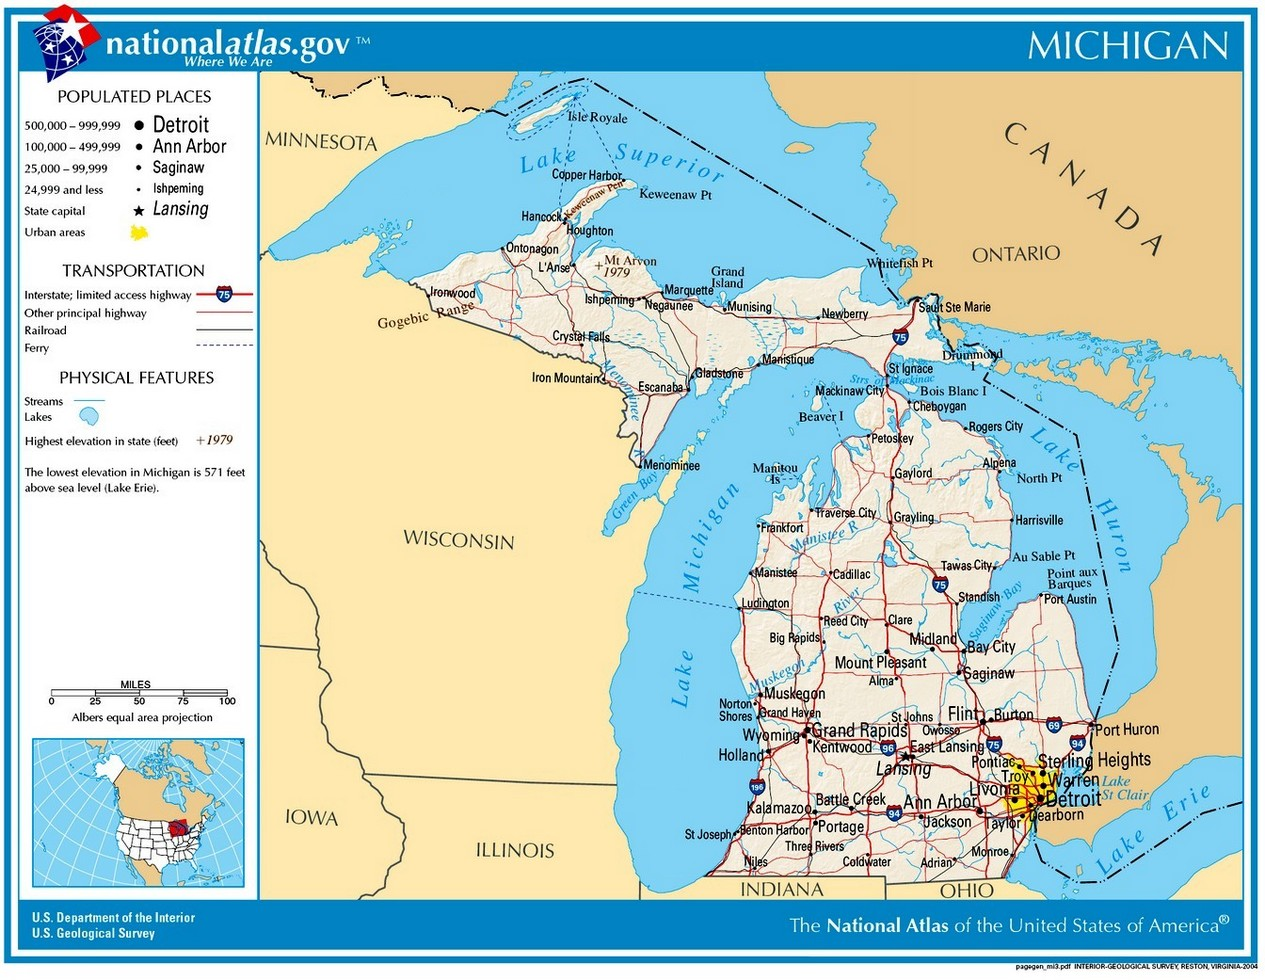 Michigan Civil War History Battles Casualties Army Soldiers - Michigan state map with cities